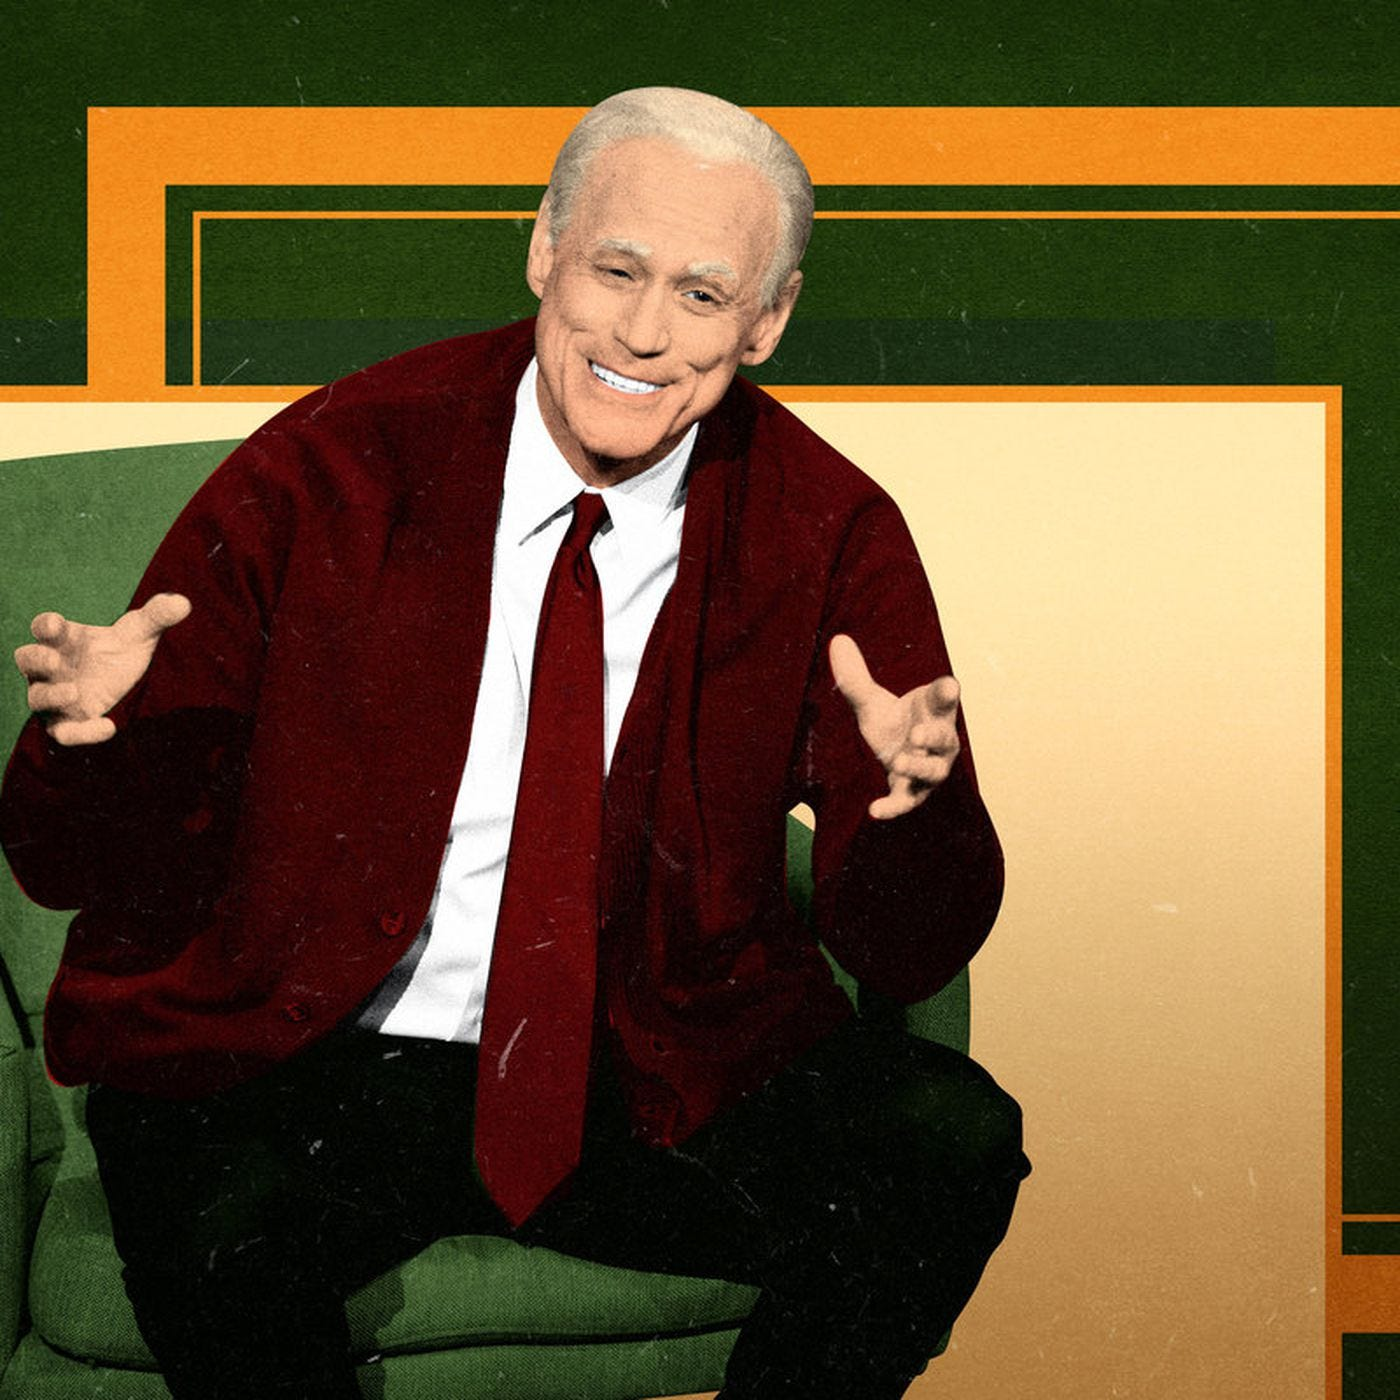 Why Has Jim Carrey's 'SNL' Joe Biden Been Such a Disaster? - The Ringer